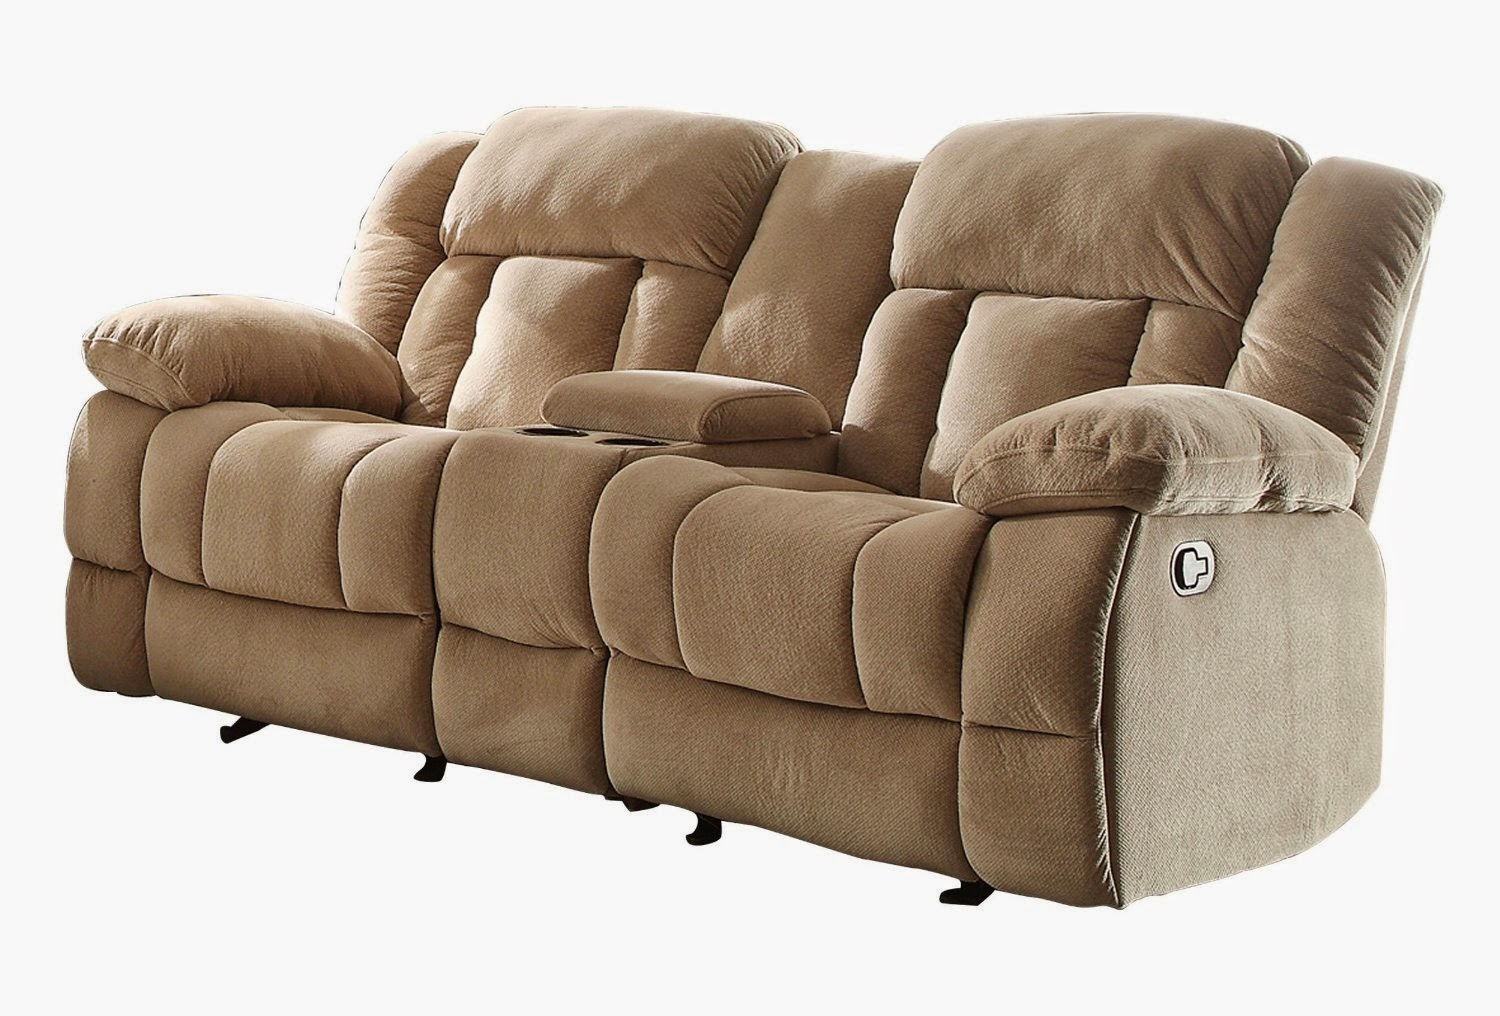 Ku Lane Taupe Lthr Vinyl Sofa furthermore Microfiber Recliner Sectional Sofa as well Broyhill Sofa Fabrics further Michaels Langston Leather Sectional Sofa moreover 2 Seater Leather Recliner Sofa Sale. on lane leather sofa reviews